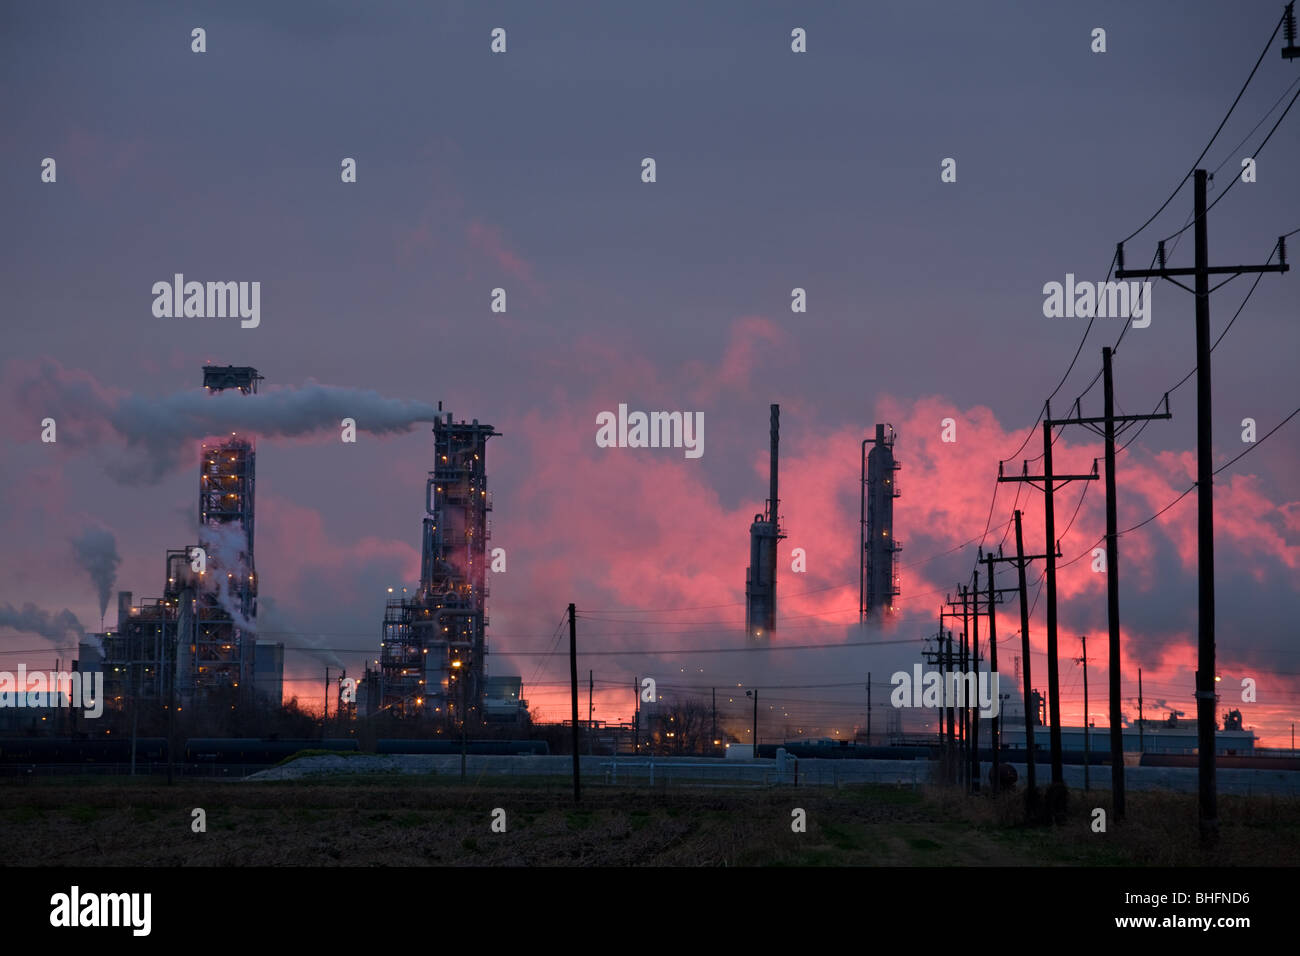 Refineries at sunset, Donaldsonville, Louisiana, start of Chemical Alley - Stock Image